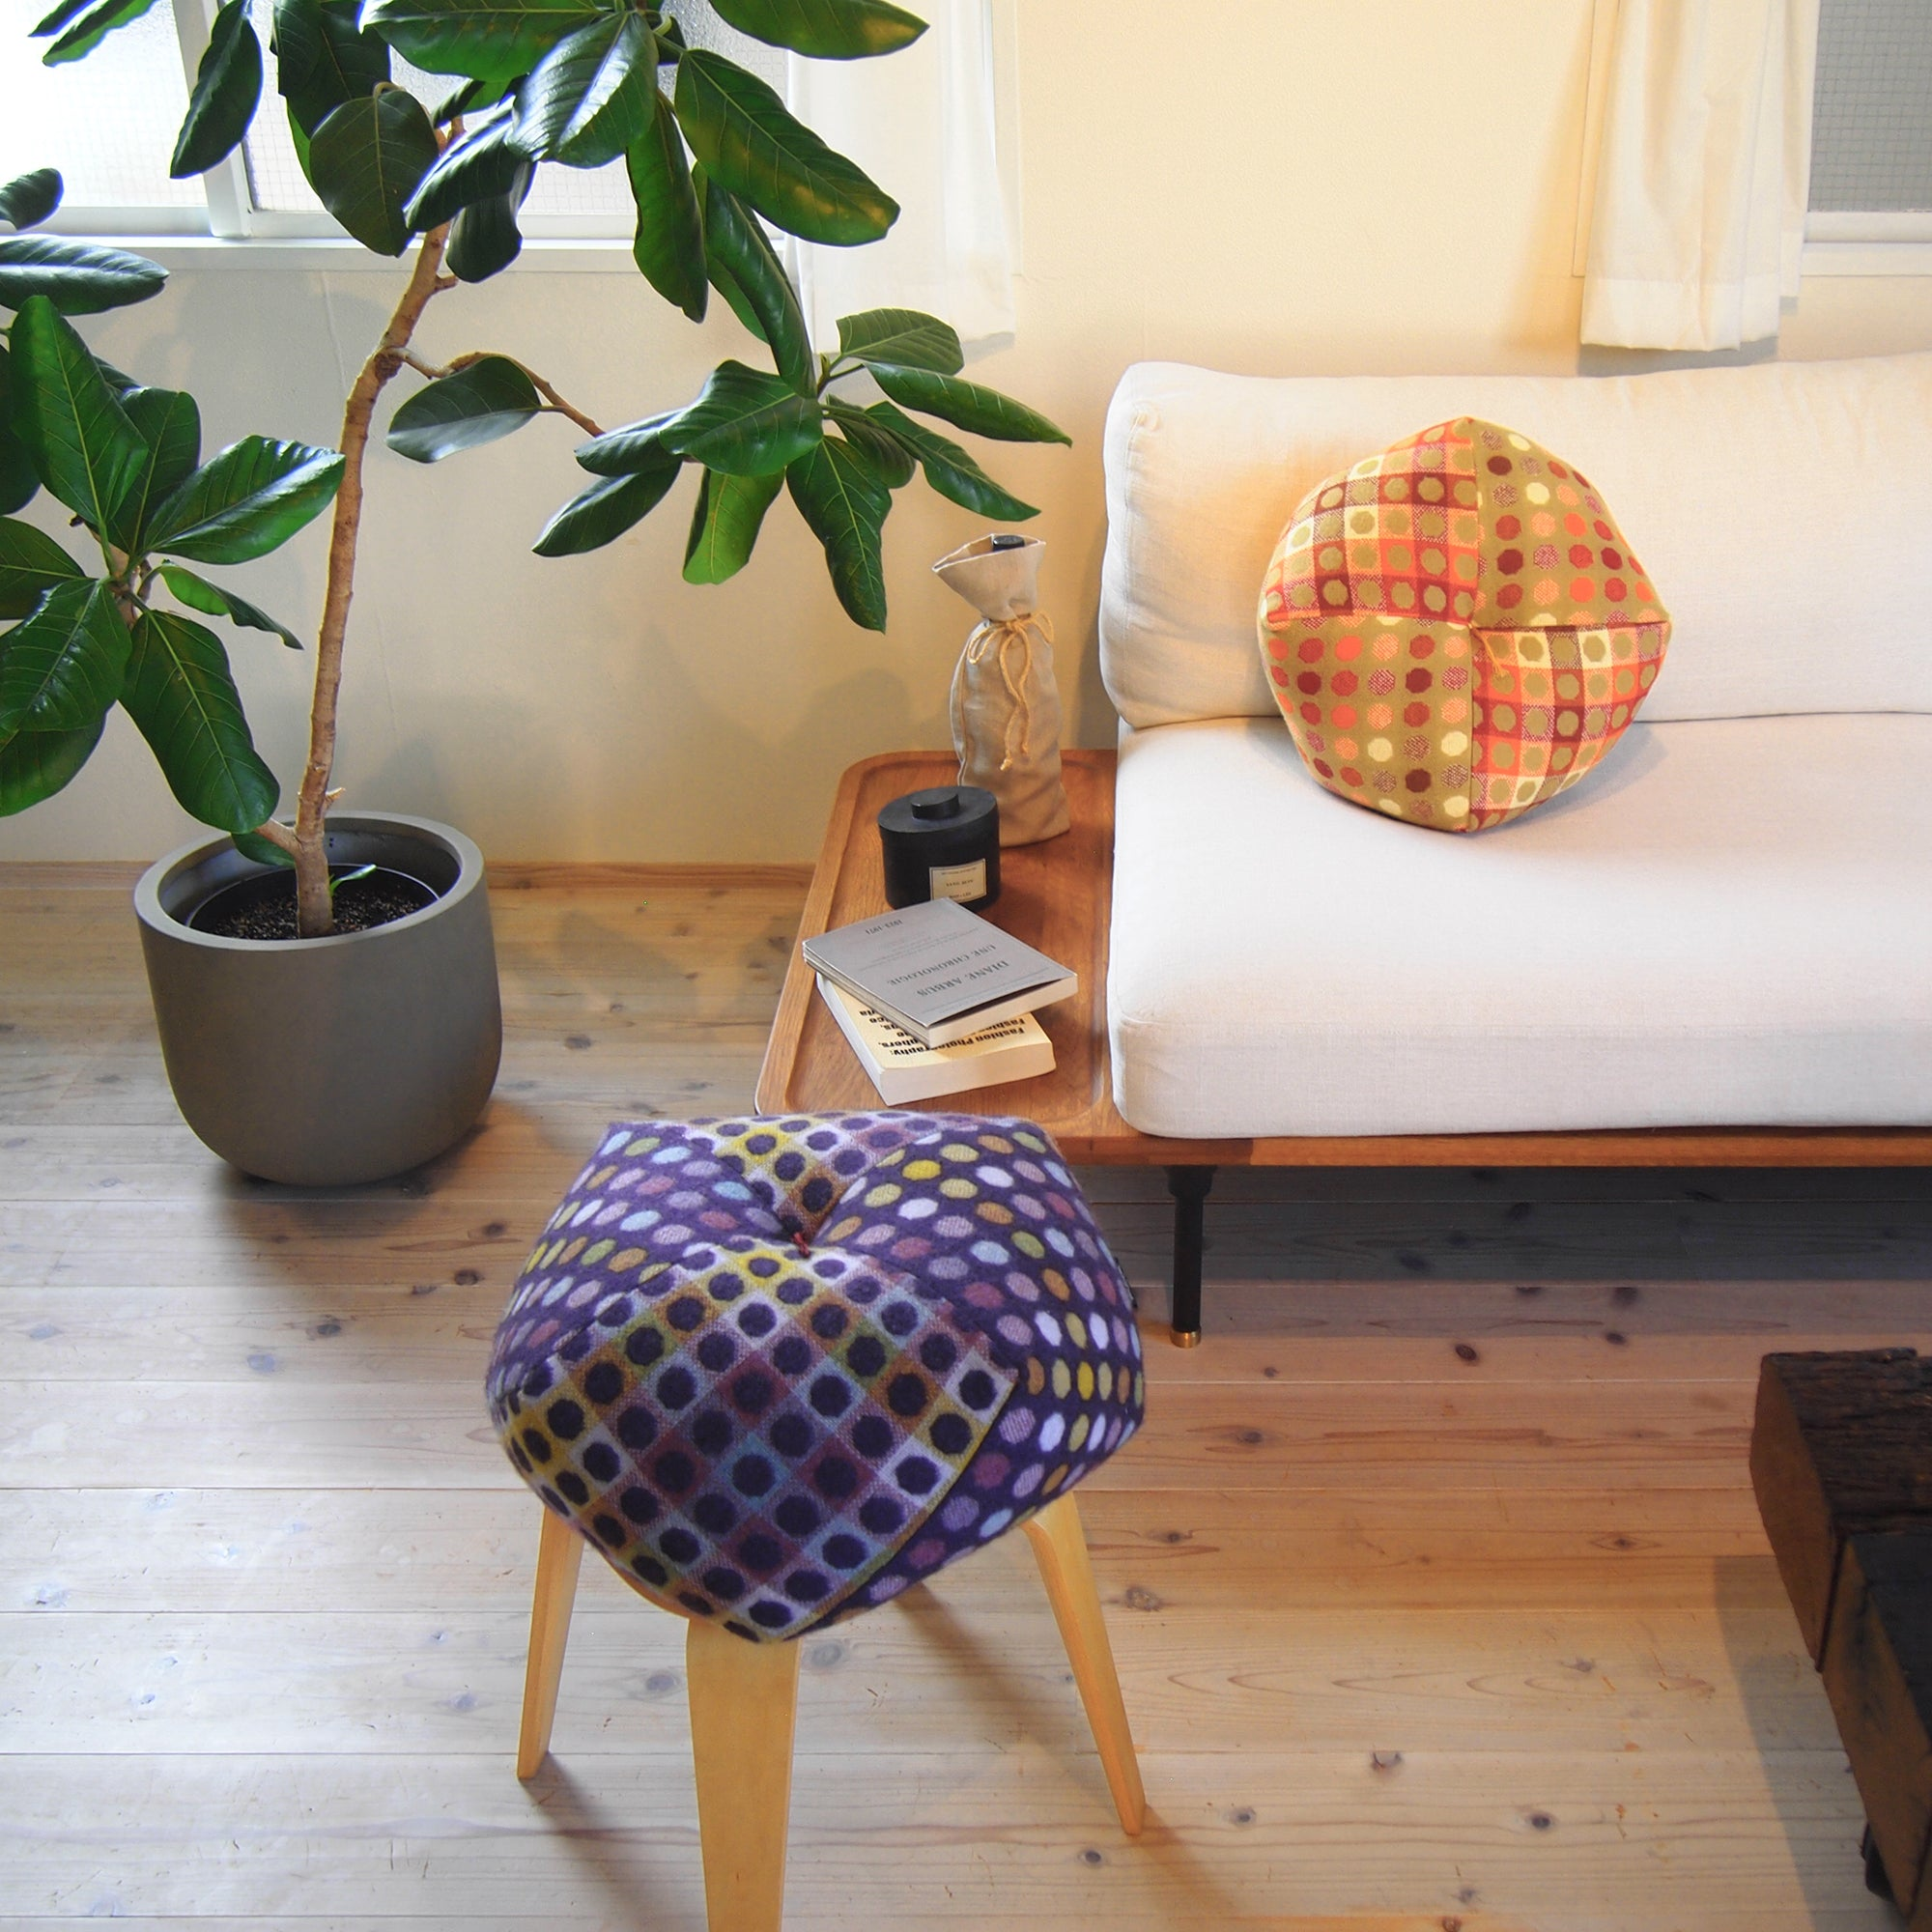 Ojami cushion | Melin Tregwynt from Wales in UK - Takaokaya